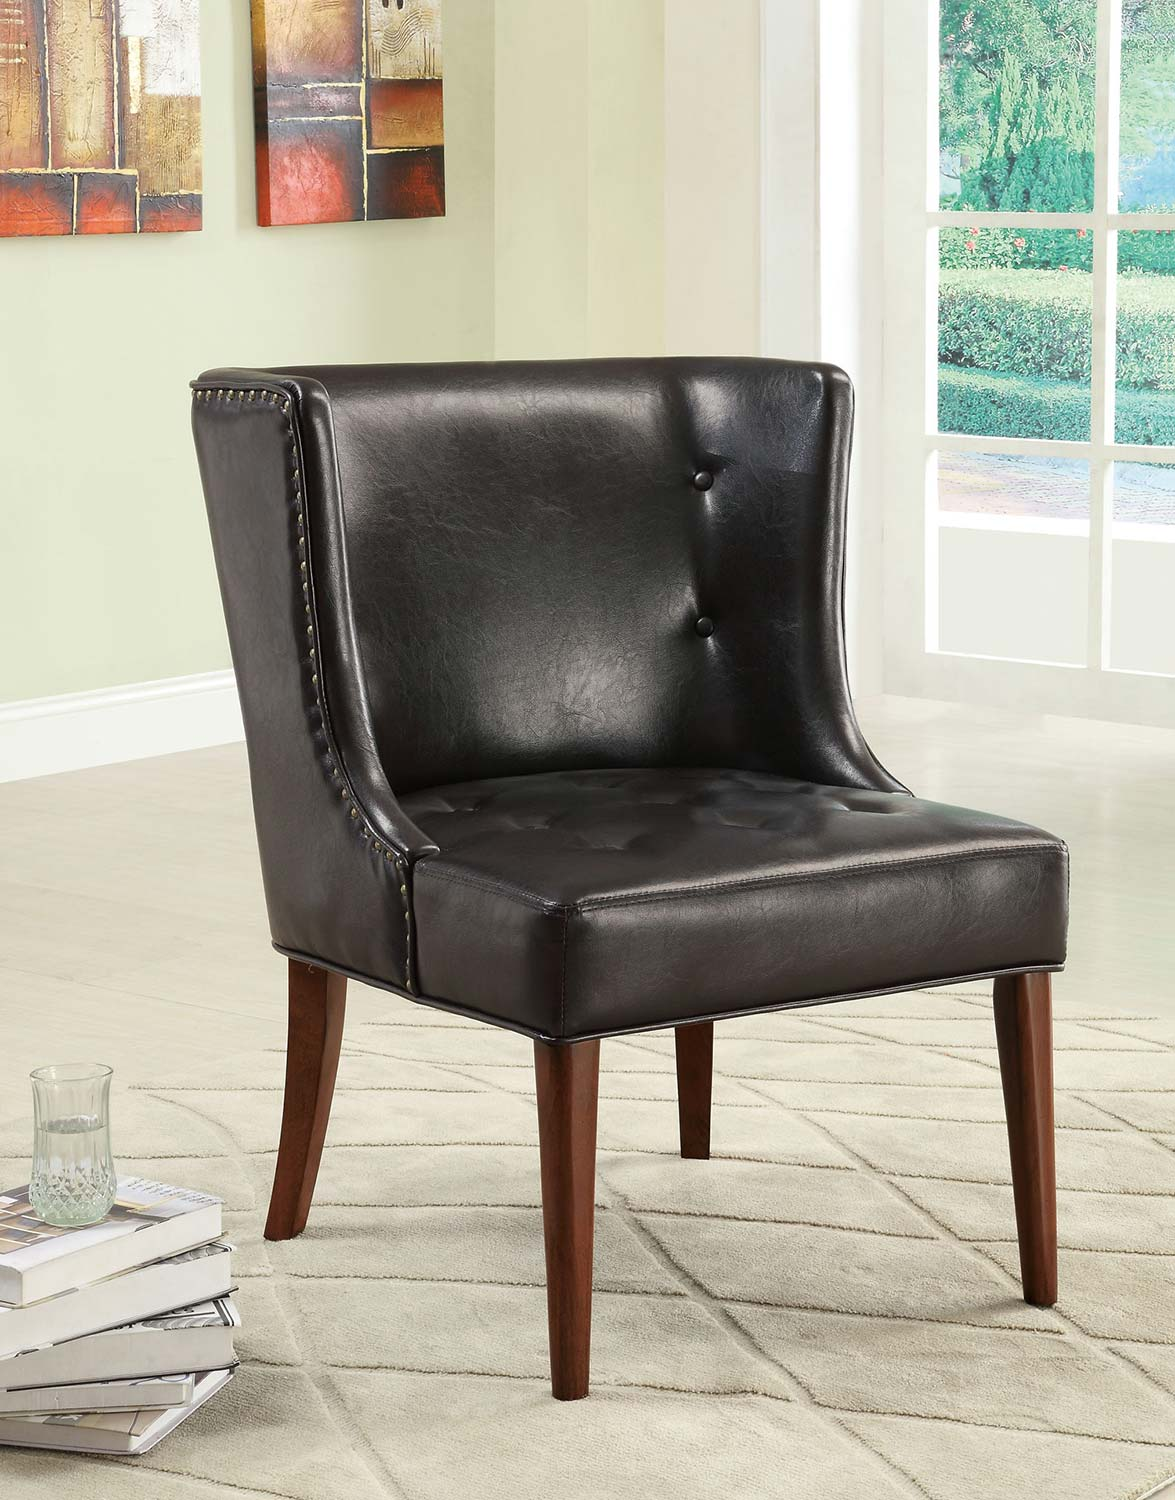 Coaster 902102 Accent Chair - Black - Cherry